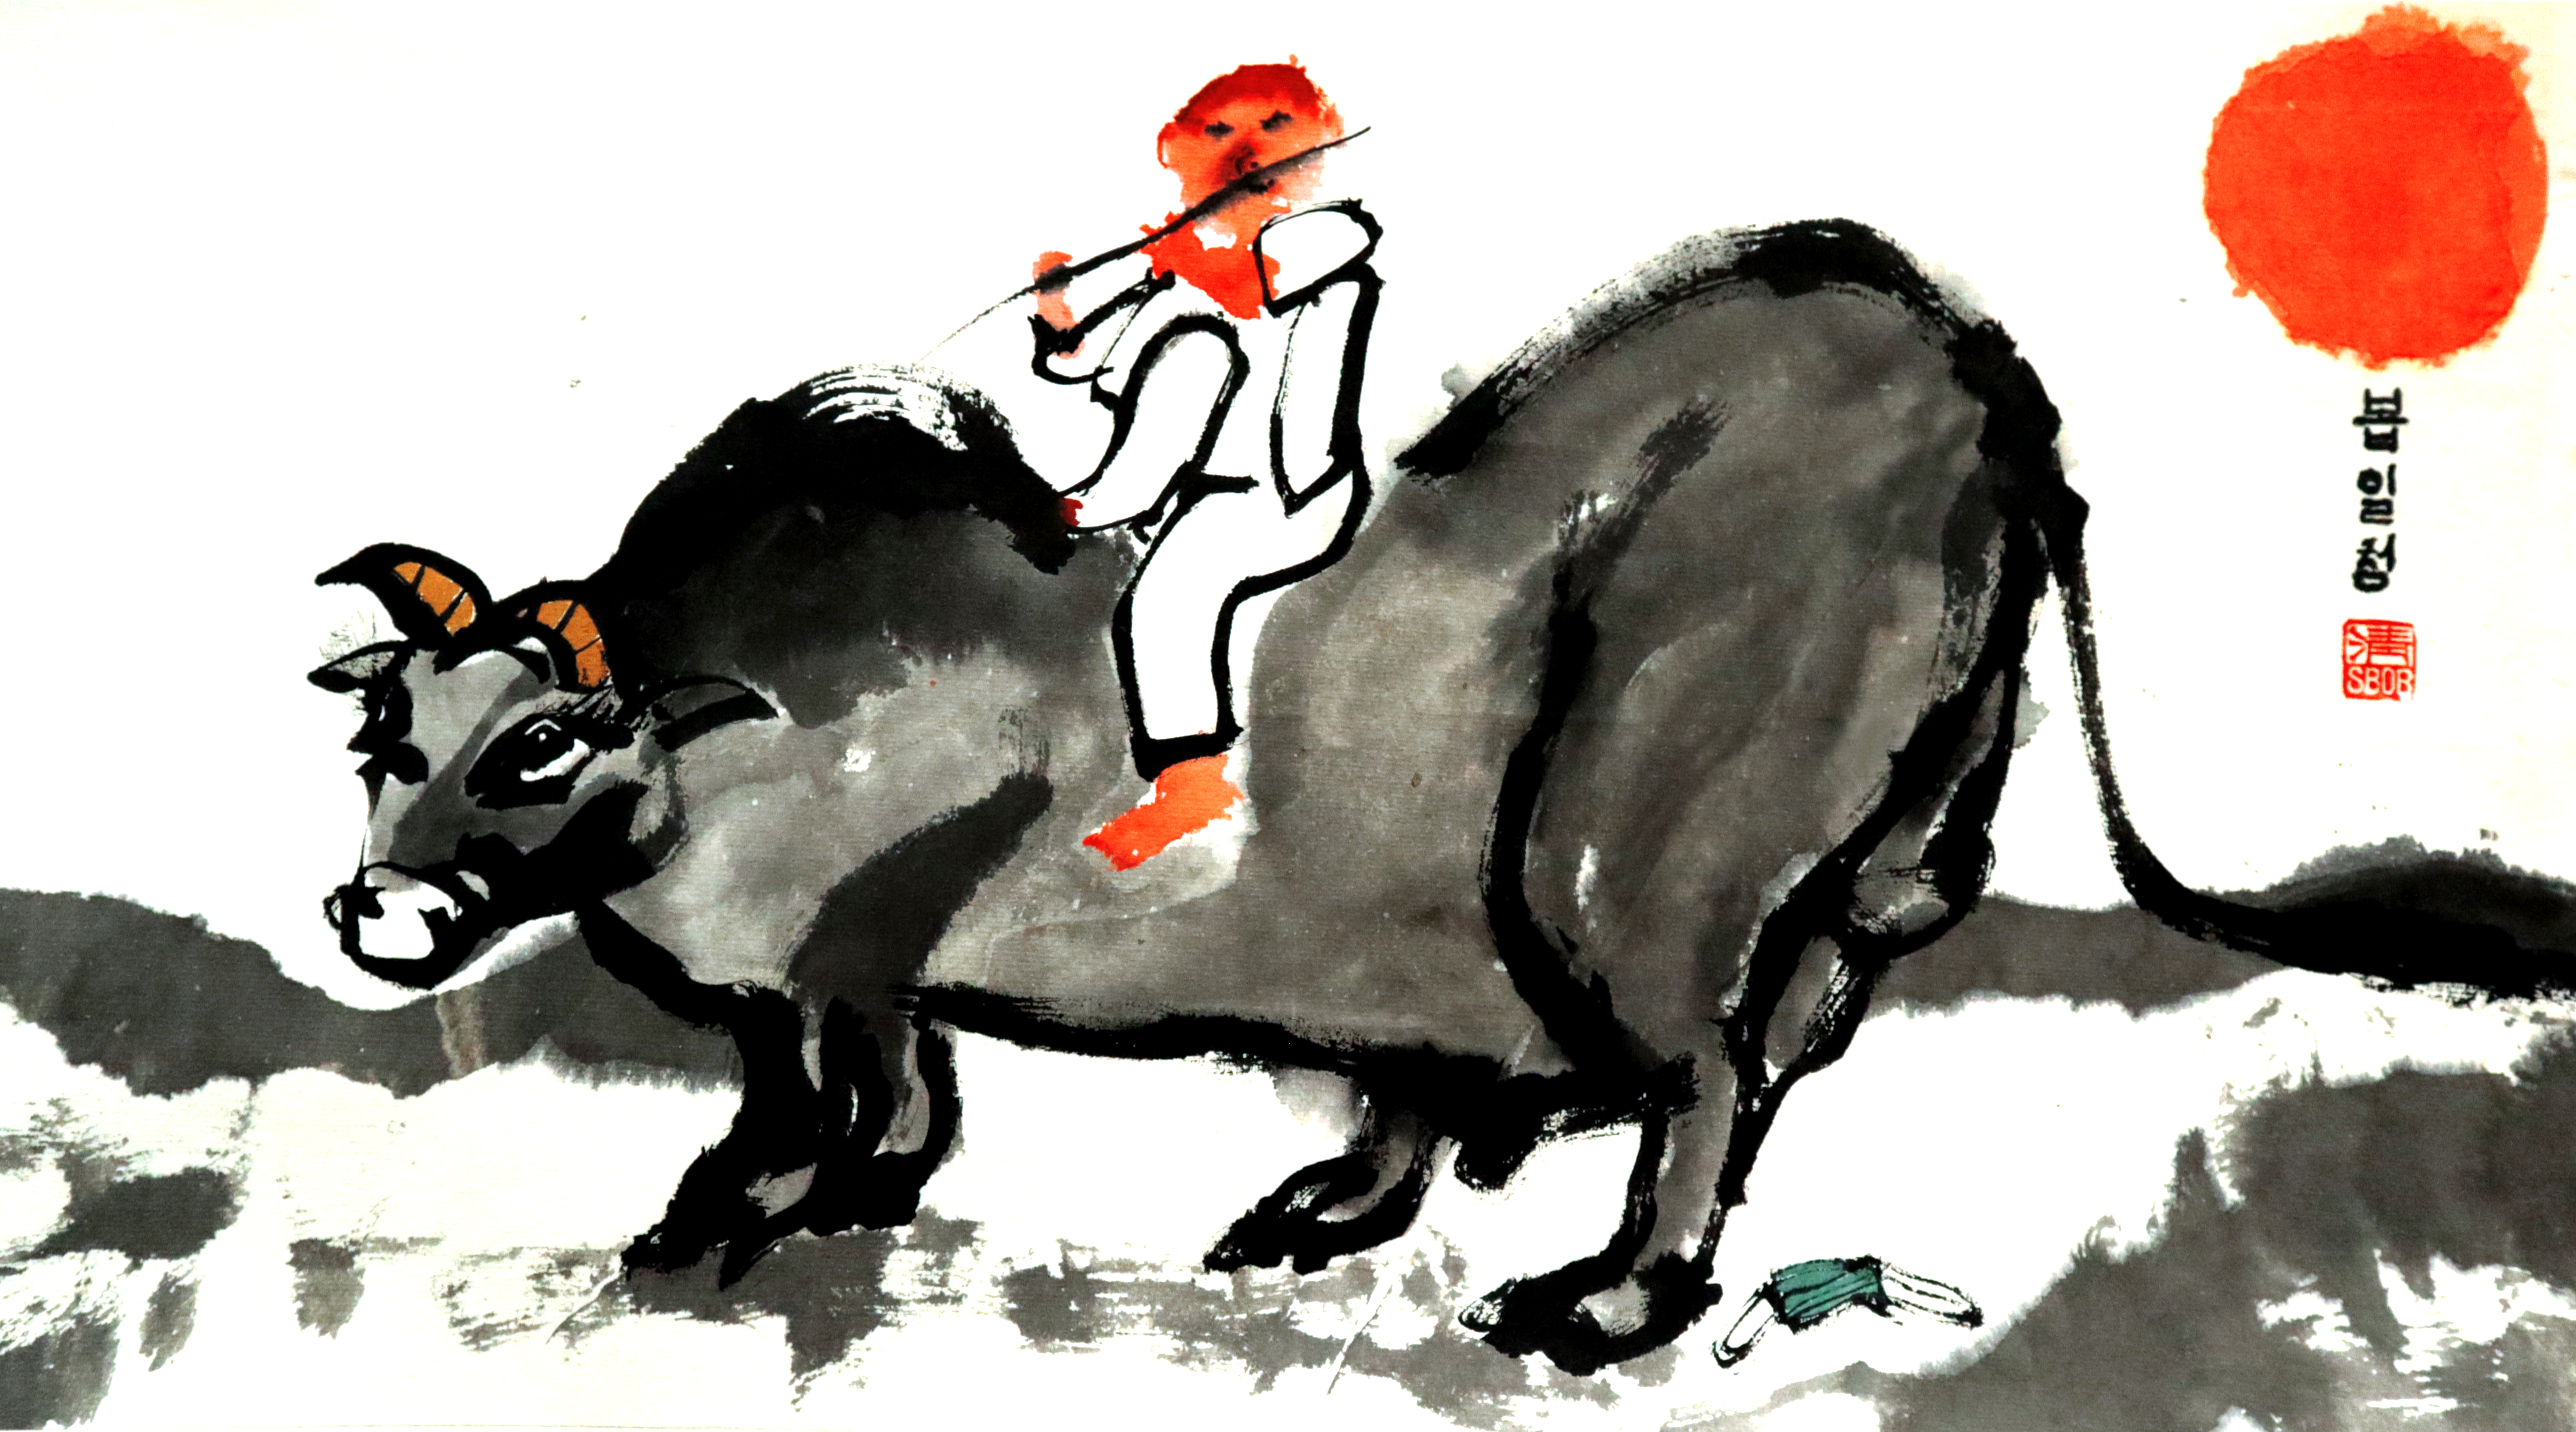 The deceptive summer is a Calligraphy by Bob Schneider Berlina boy is riding an ox and playing the flute. The ox tramples a medical mask